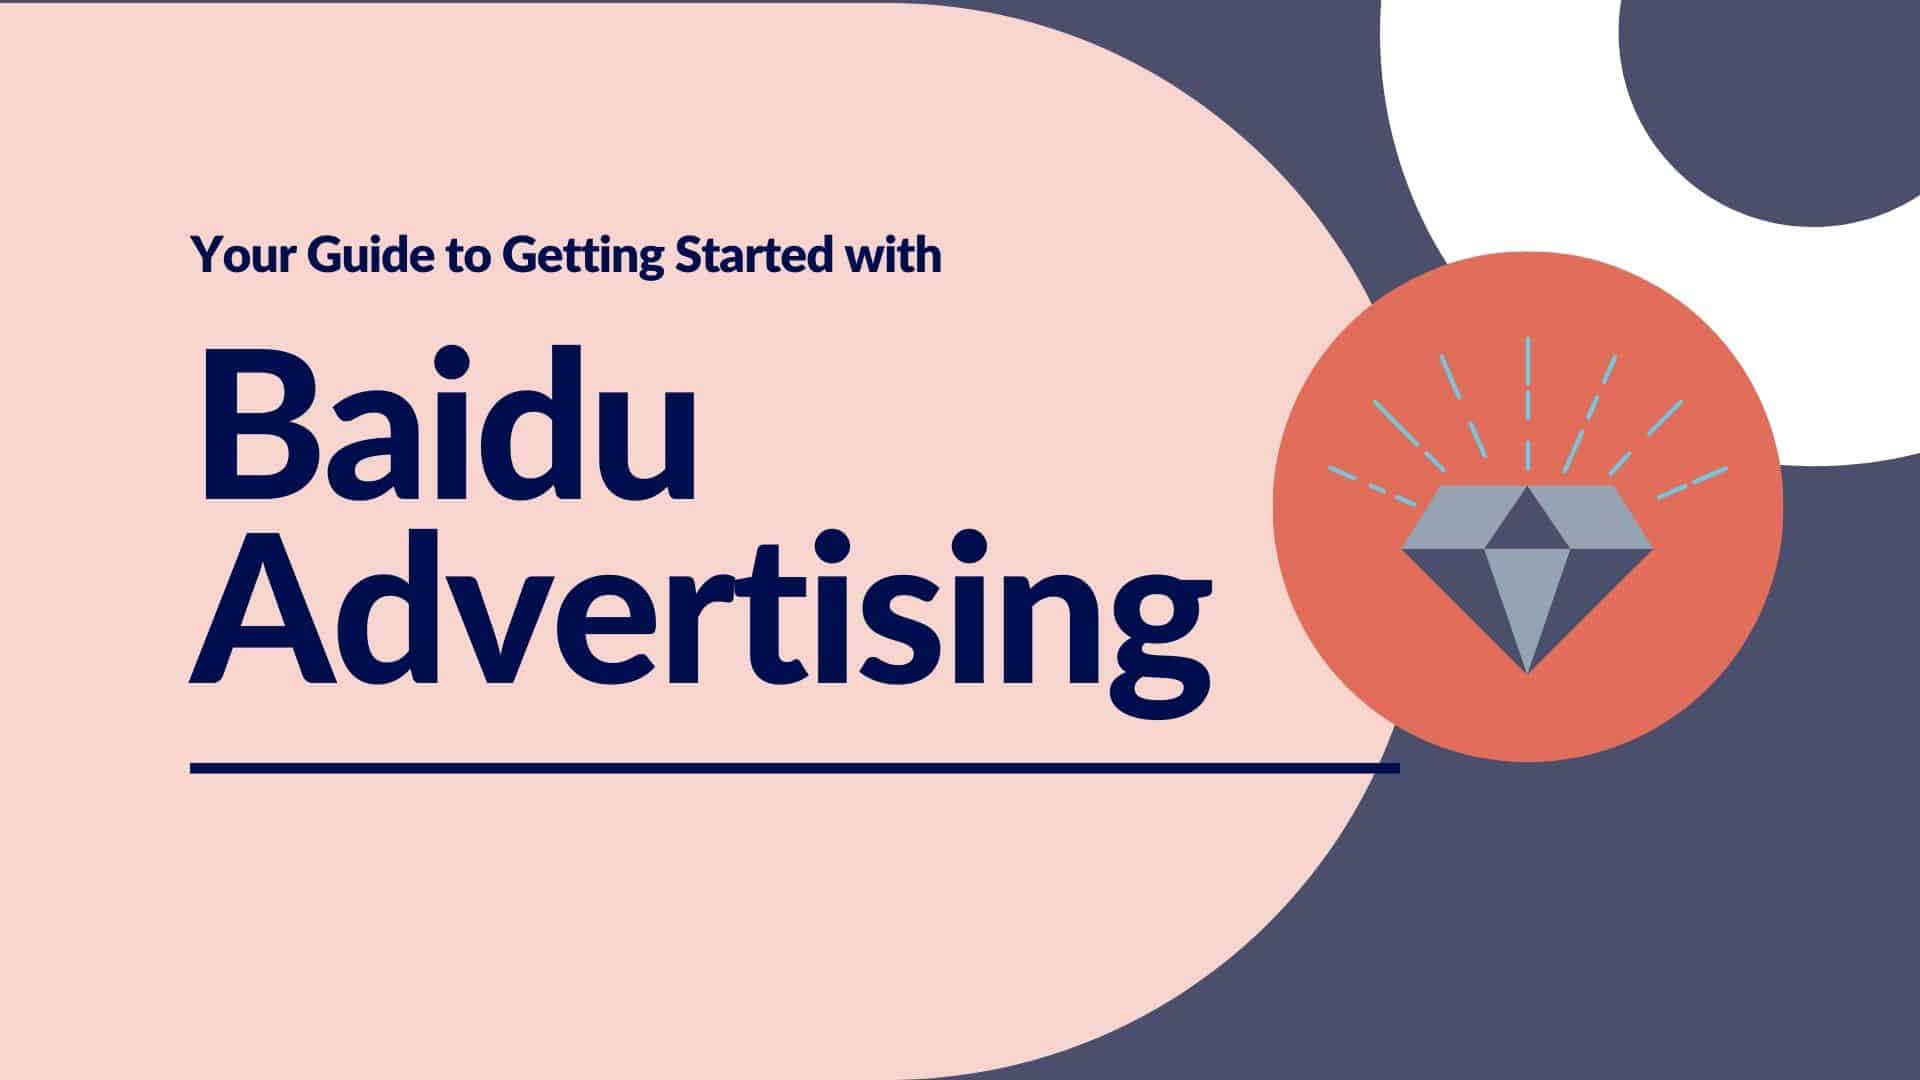 A Beginner's Guide to Advertising on Baidu